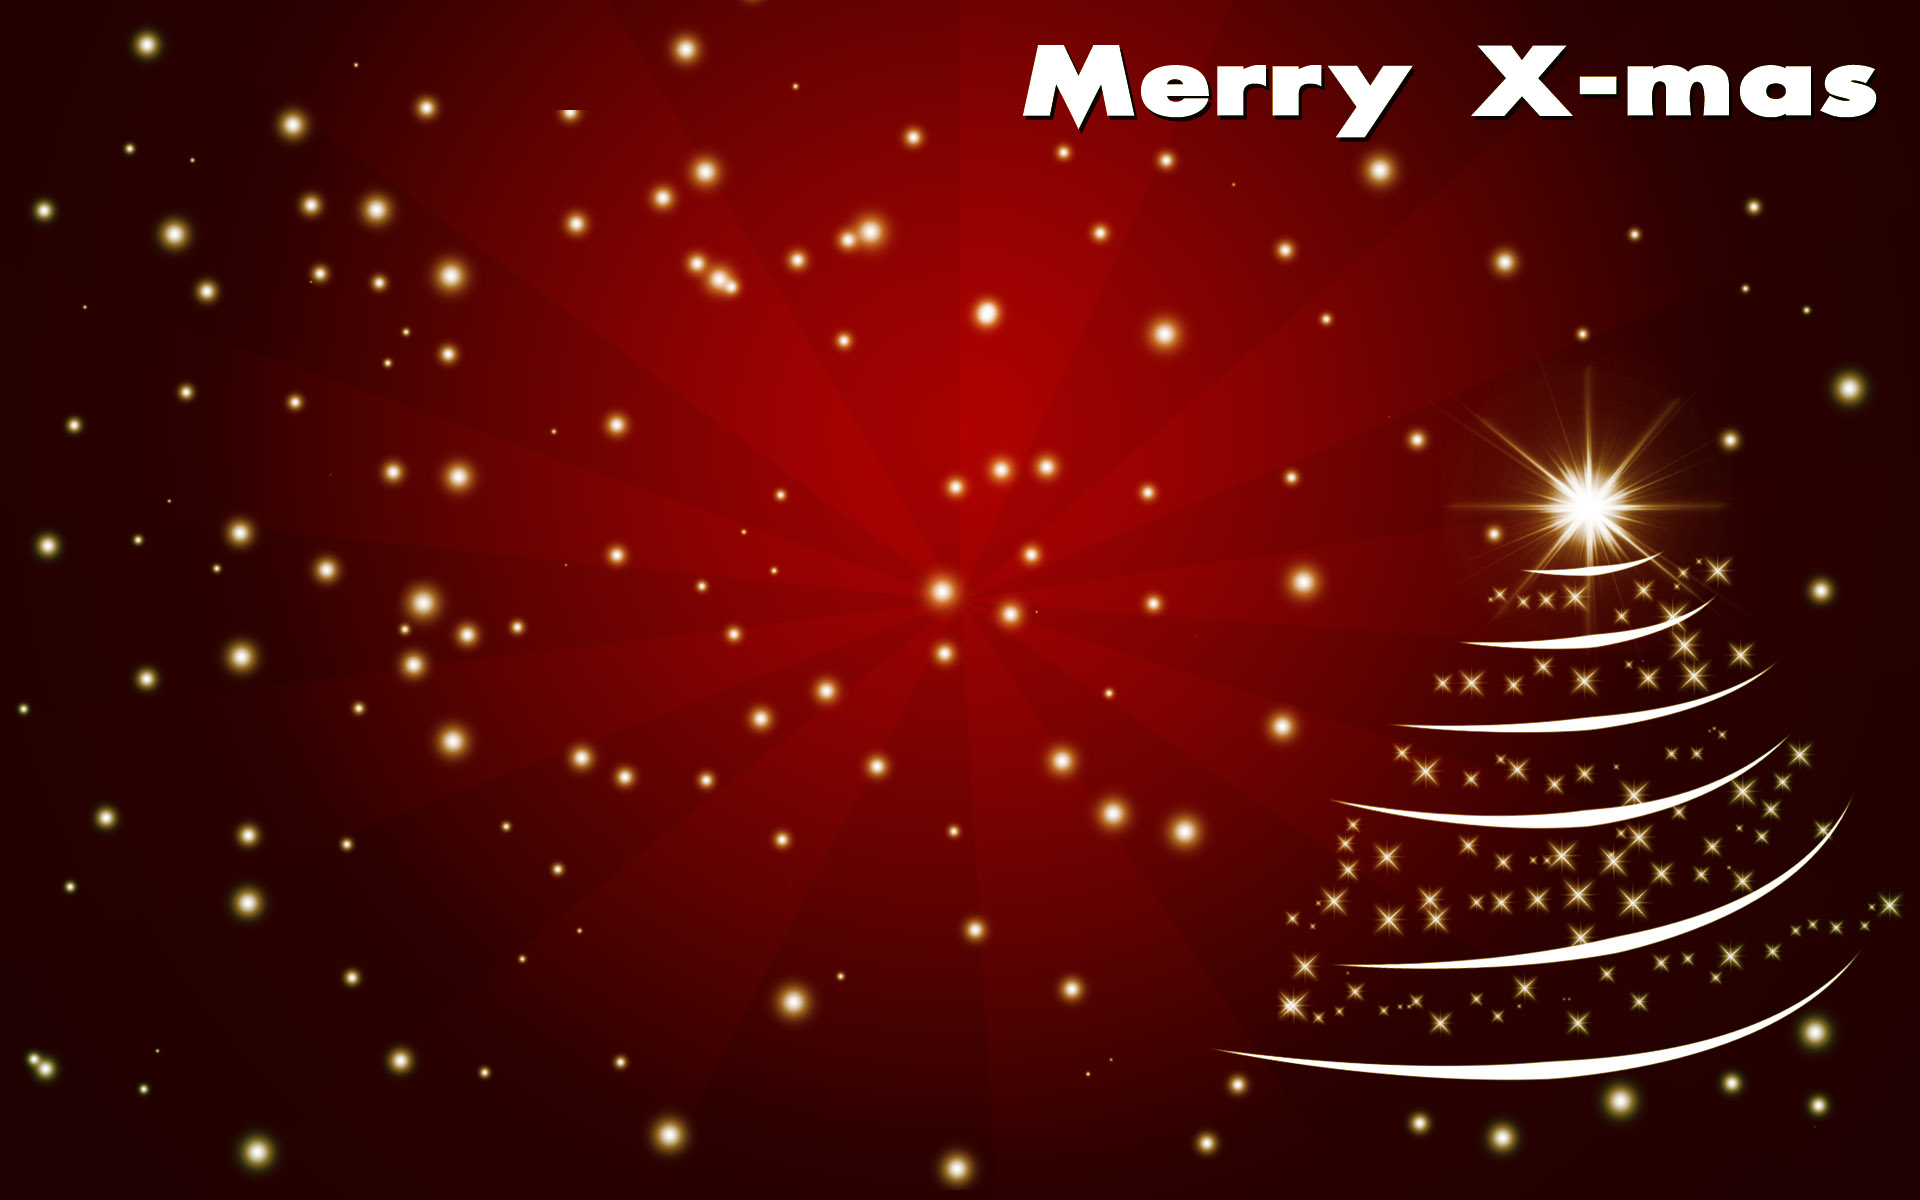 Christmas wallpaper high definition 27085